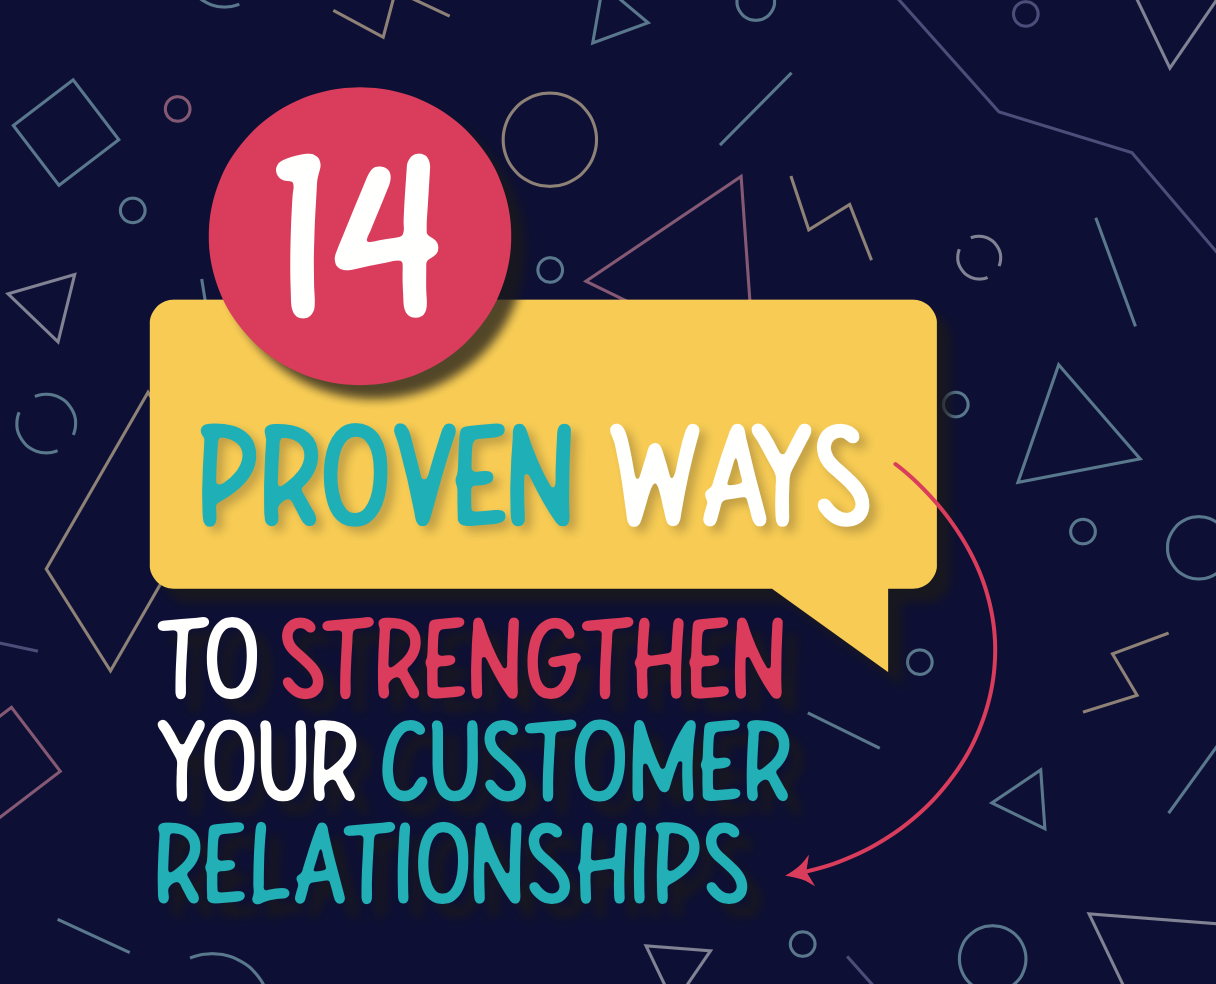 14 Proven Ways to Strengthen Your Customer Relationships